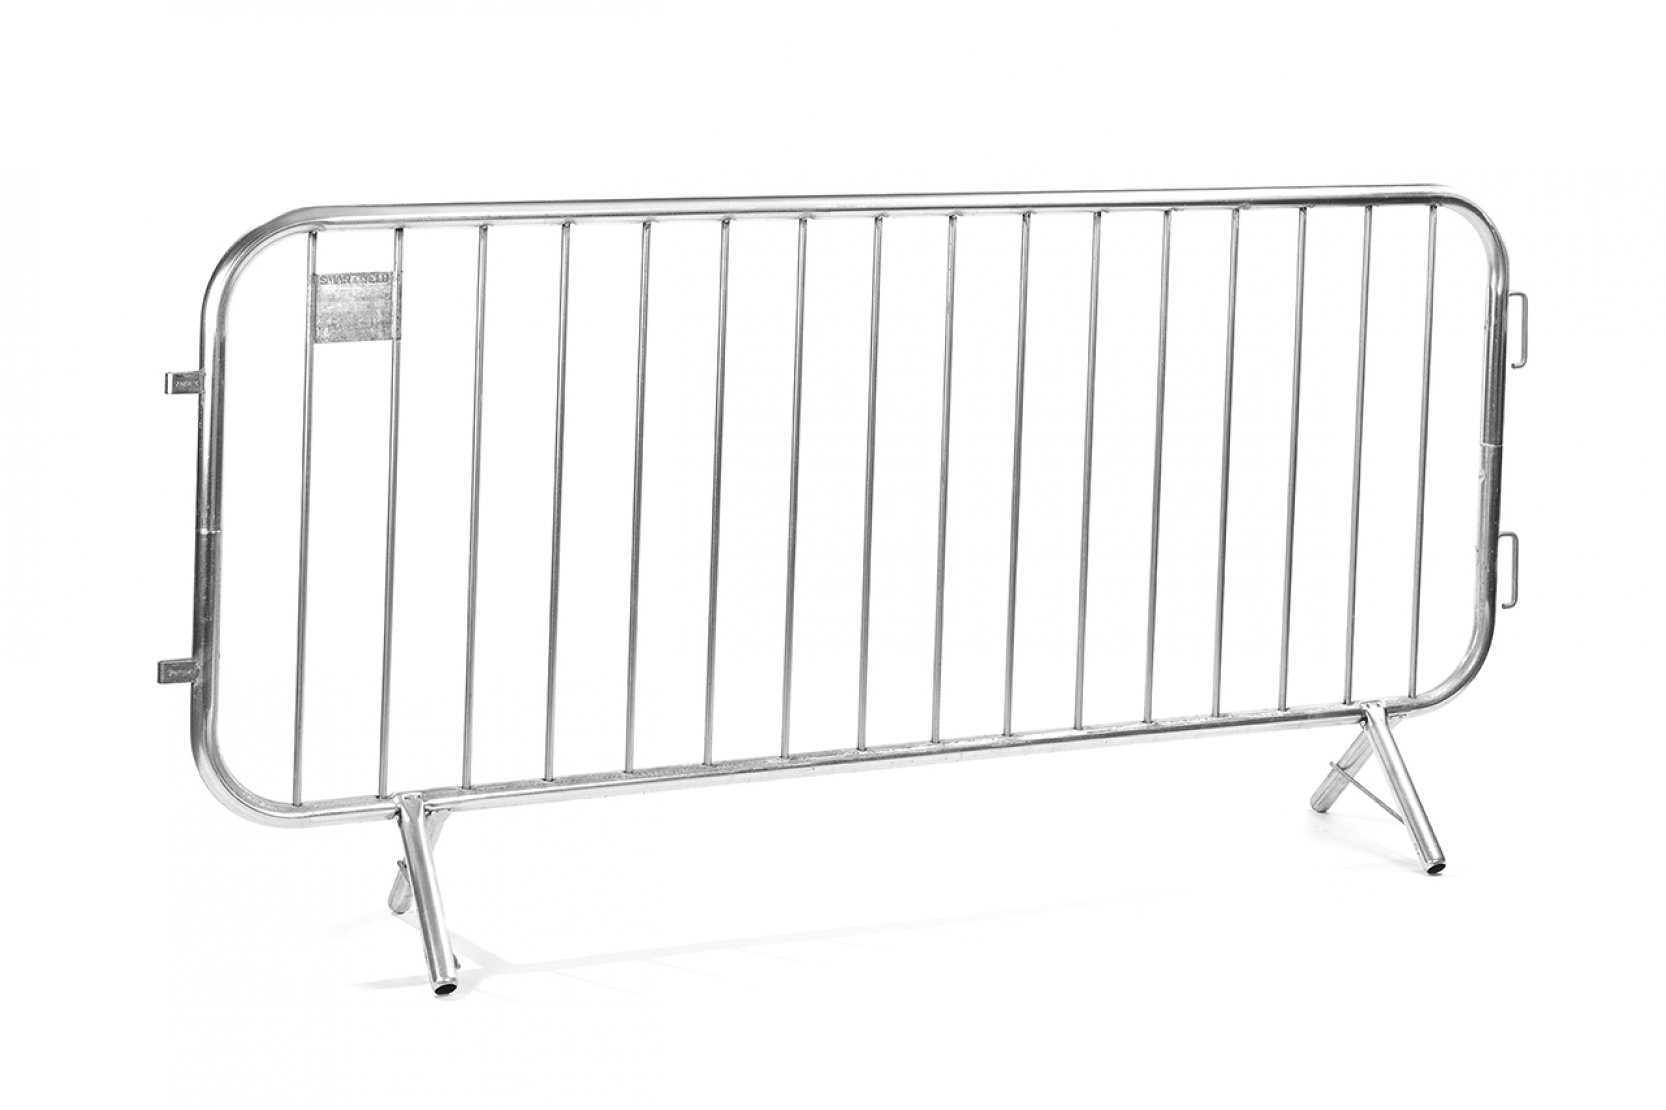 Fixed Crowd Control Barrier 2 3m